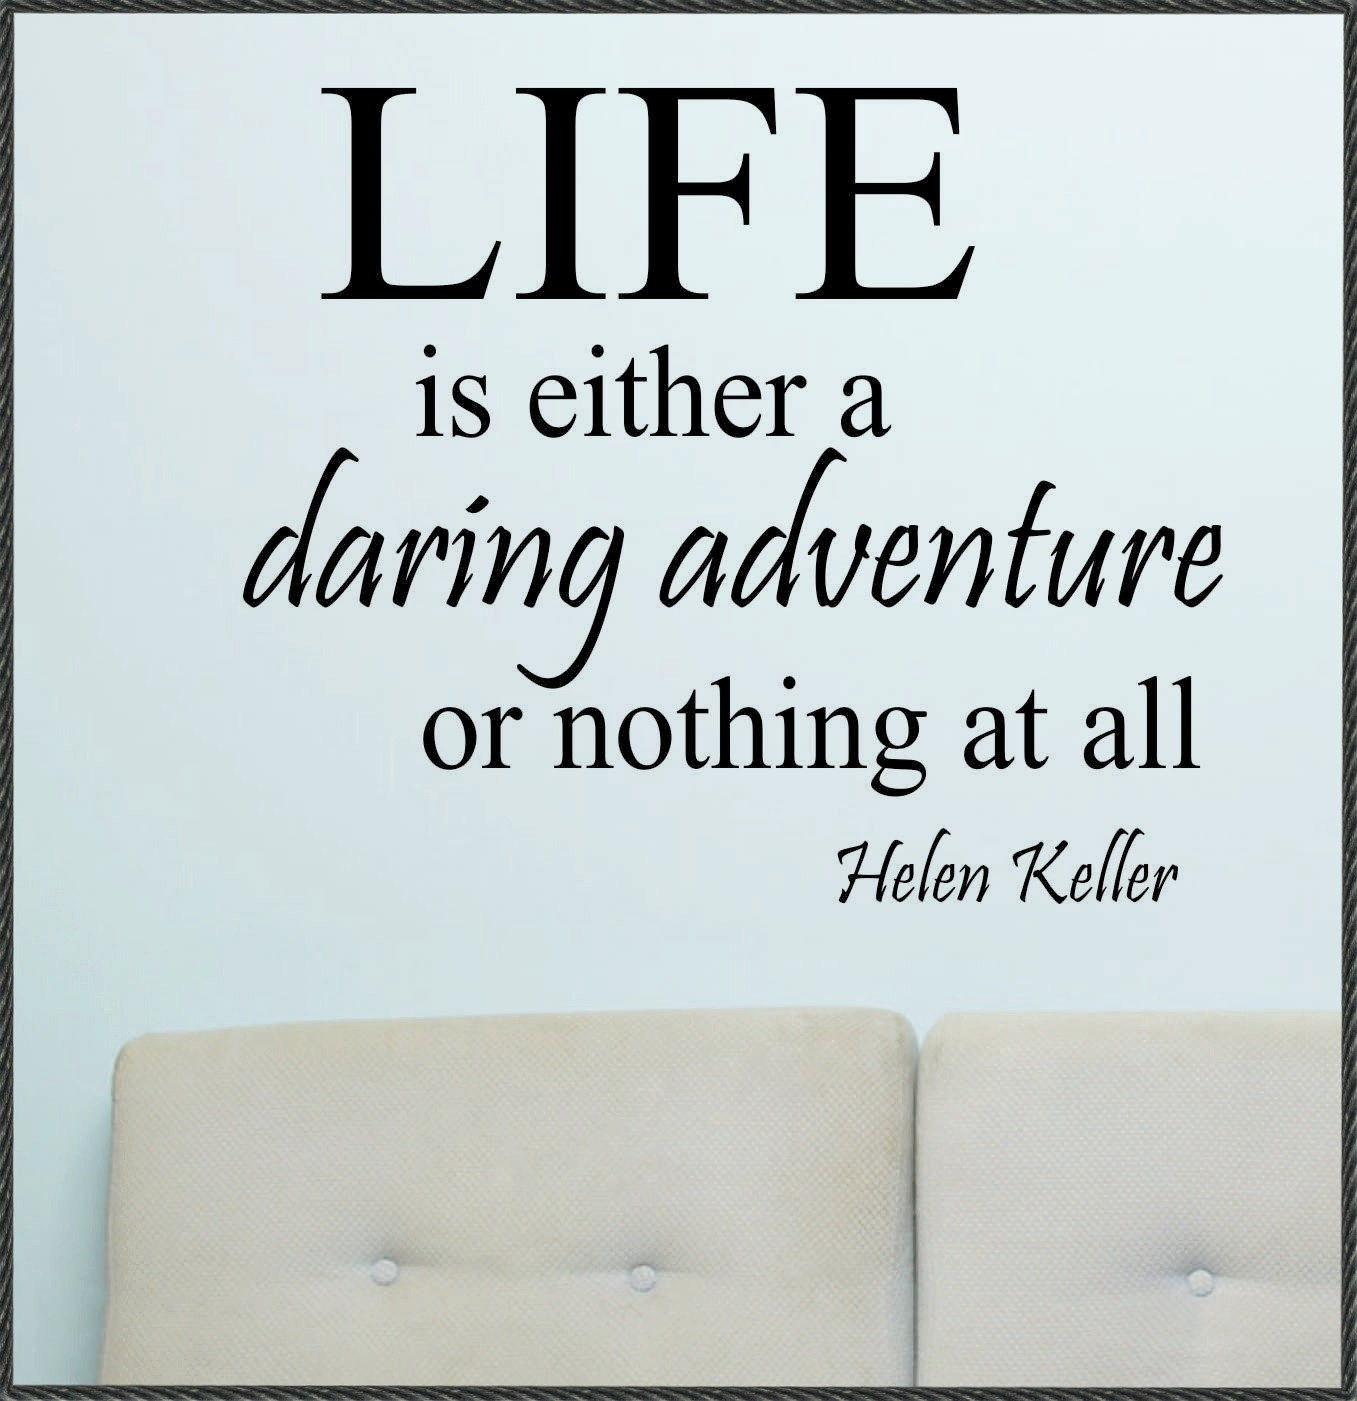 Quotes About Life 62 Best Daring Quotes And Sayings